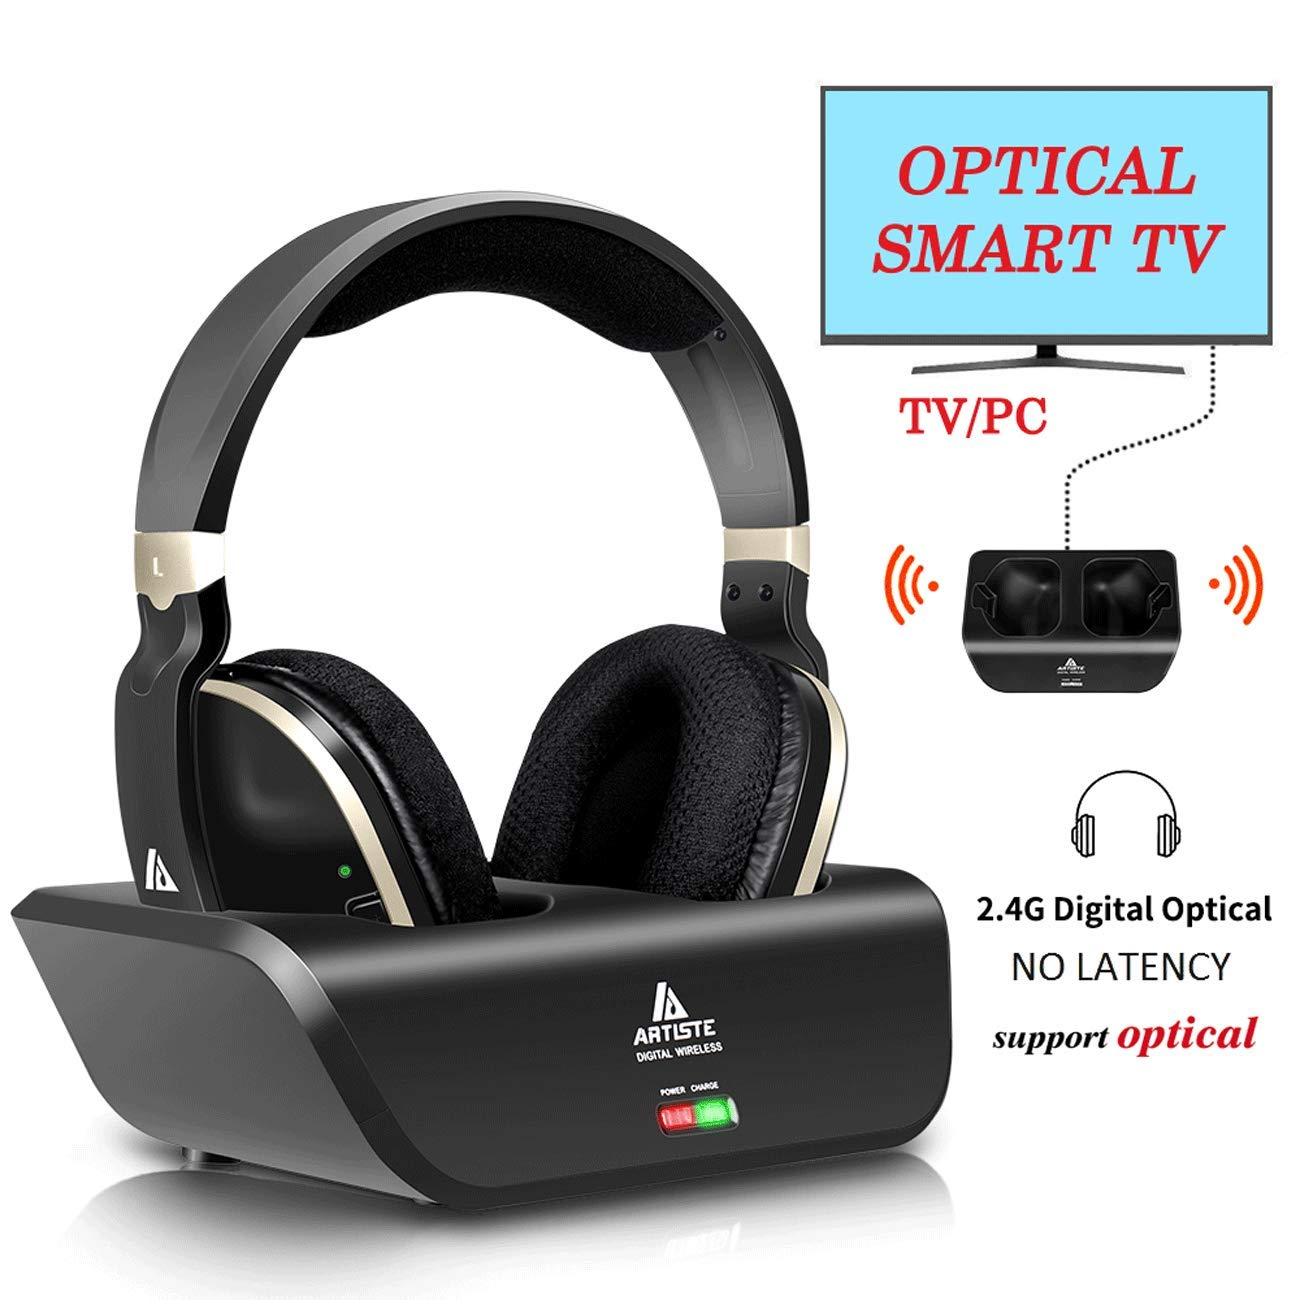 Wireless Headphone Over Ear For Smart TV Watching with Optical, Digital Stereo Headsets with Charging Dock Support 2.4GHz RF Transmitter No Latency 20H Playtime for Samsung Plasma LG Vizio TV